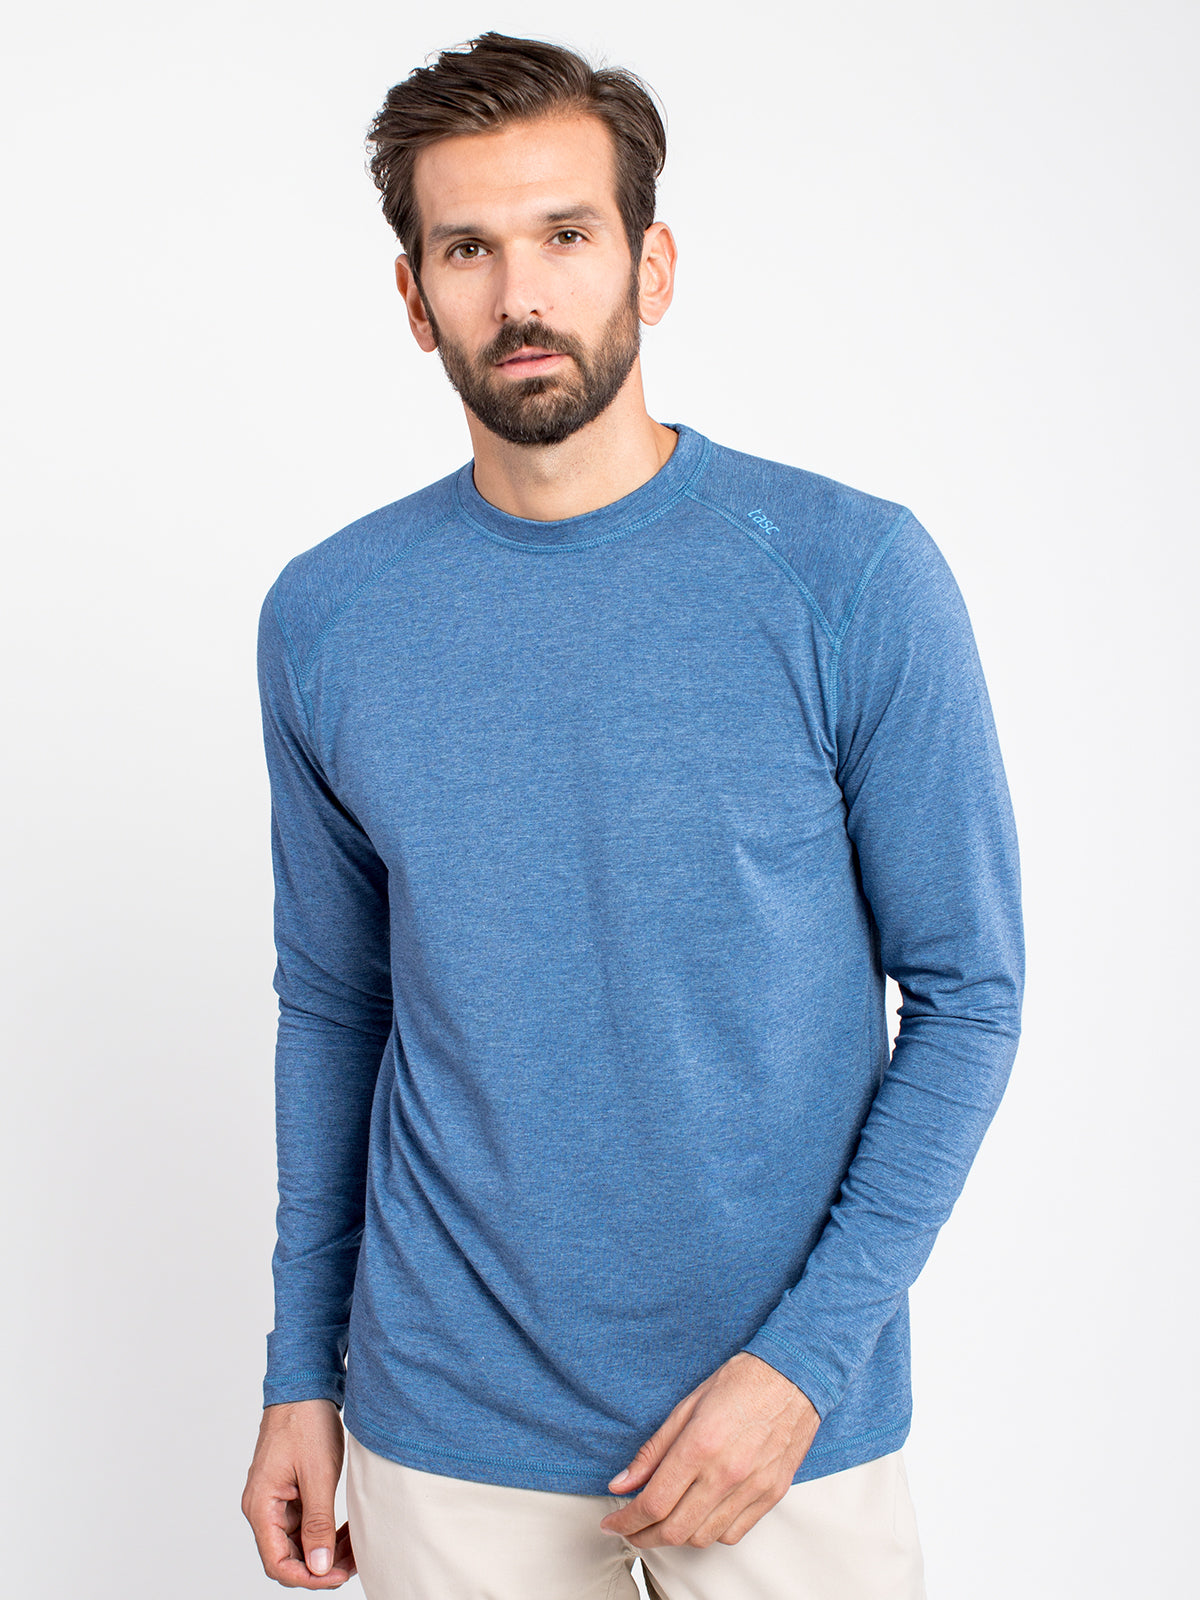 'TASC' Men's Carrollton Bamboo Tee - Indigo Heather